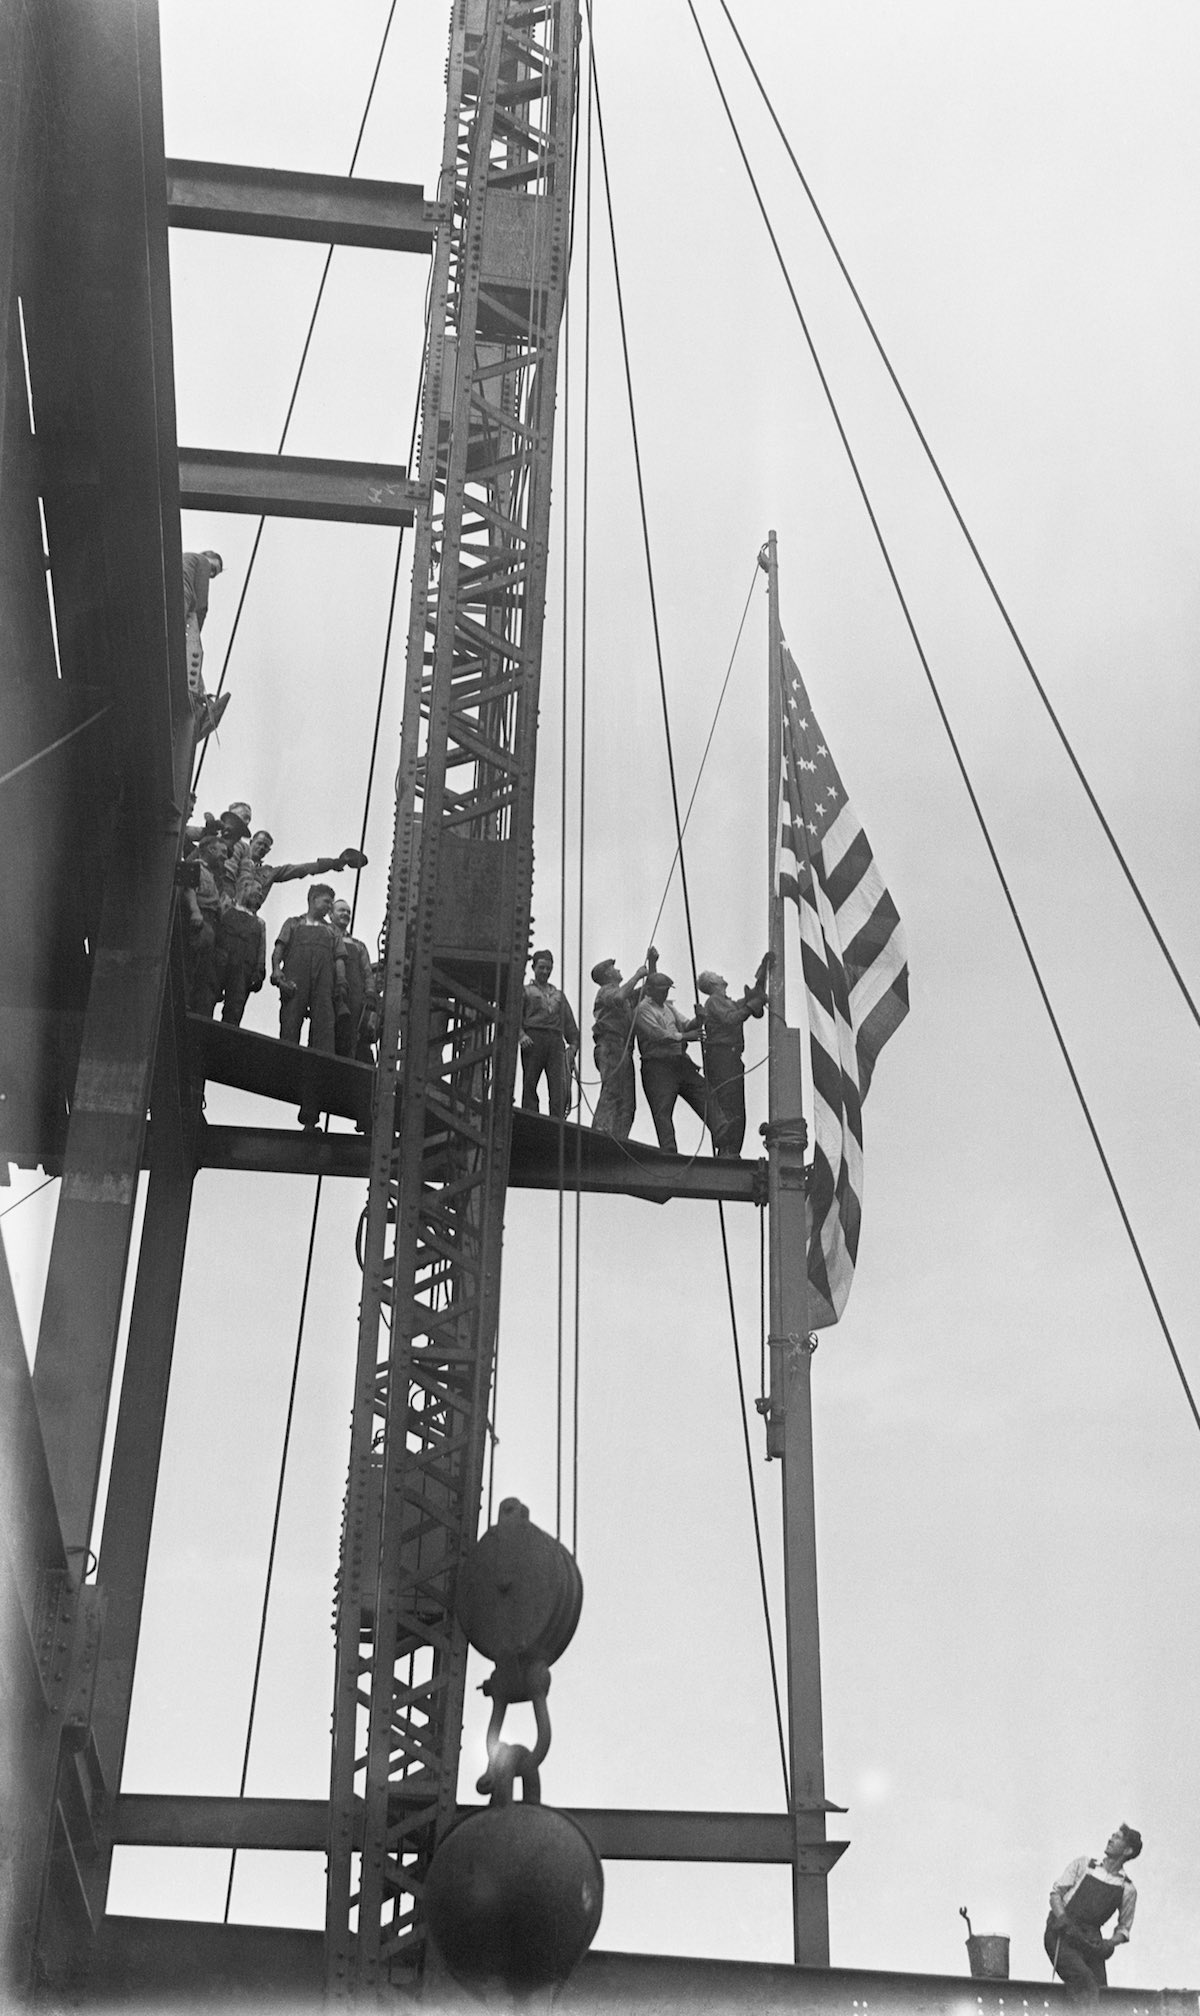 Workmen Raise Flag At The Empire State